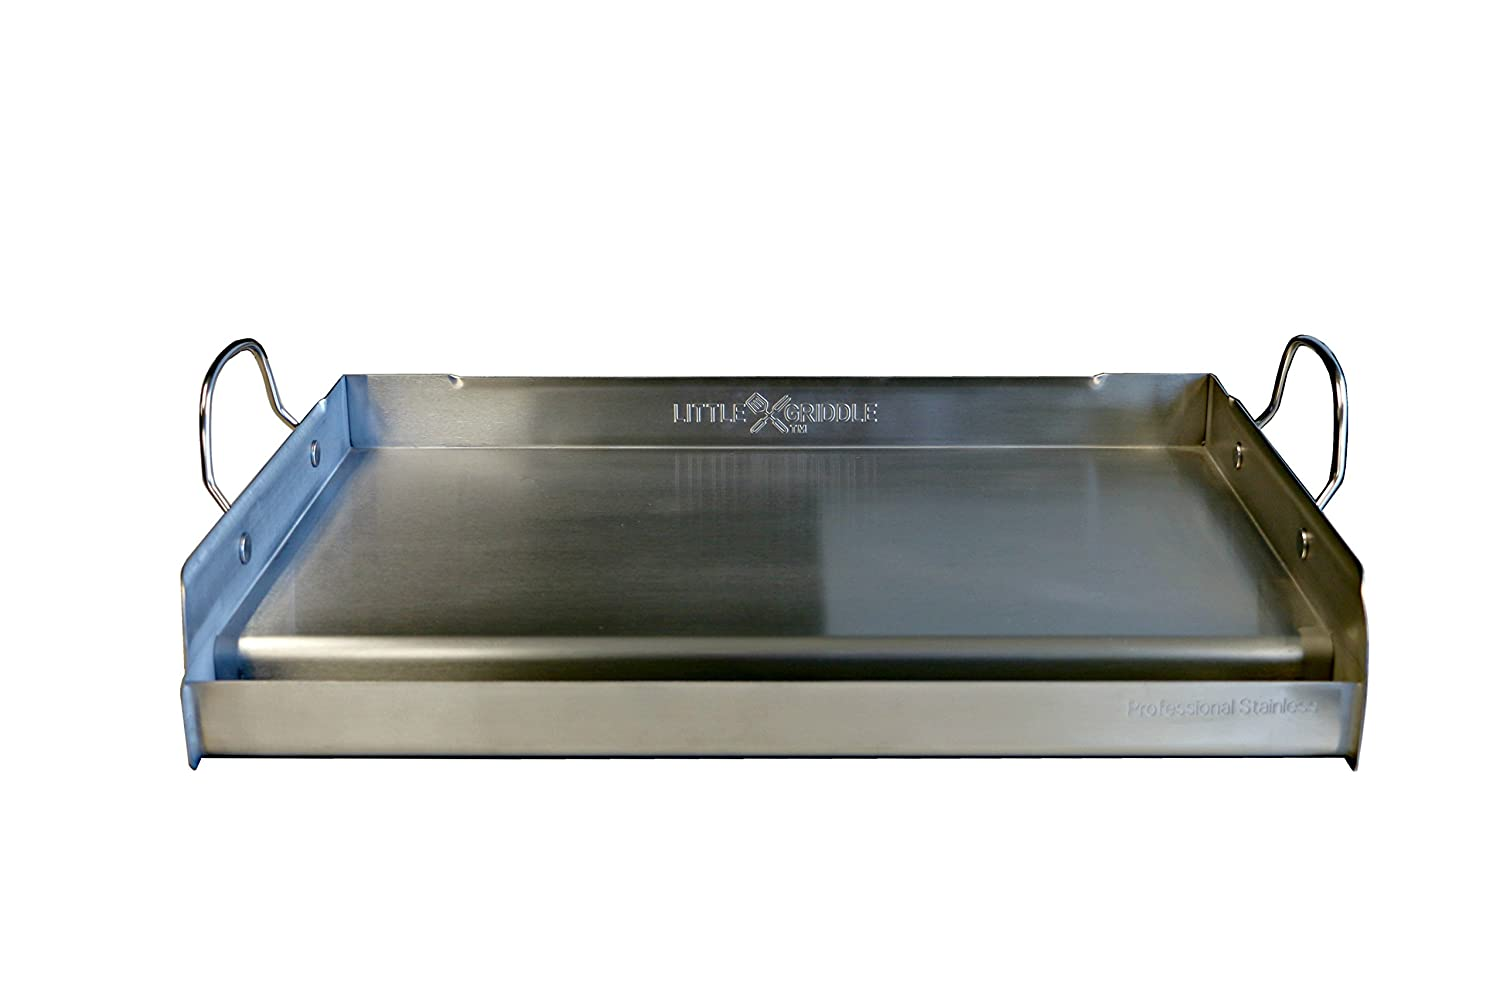 "Little Griddle GQ230 100% Stainless Steel Professional Quality Griddle with Even Heat Cross Bracing and Removable Handles for Charcoal/Gas Grills, Camping, Tailgating, and Parties (25""x16""x6.5"")"